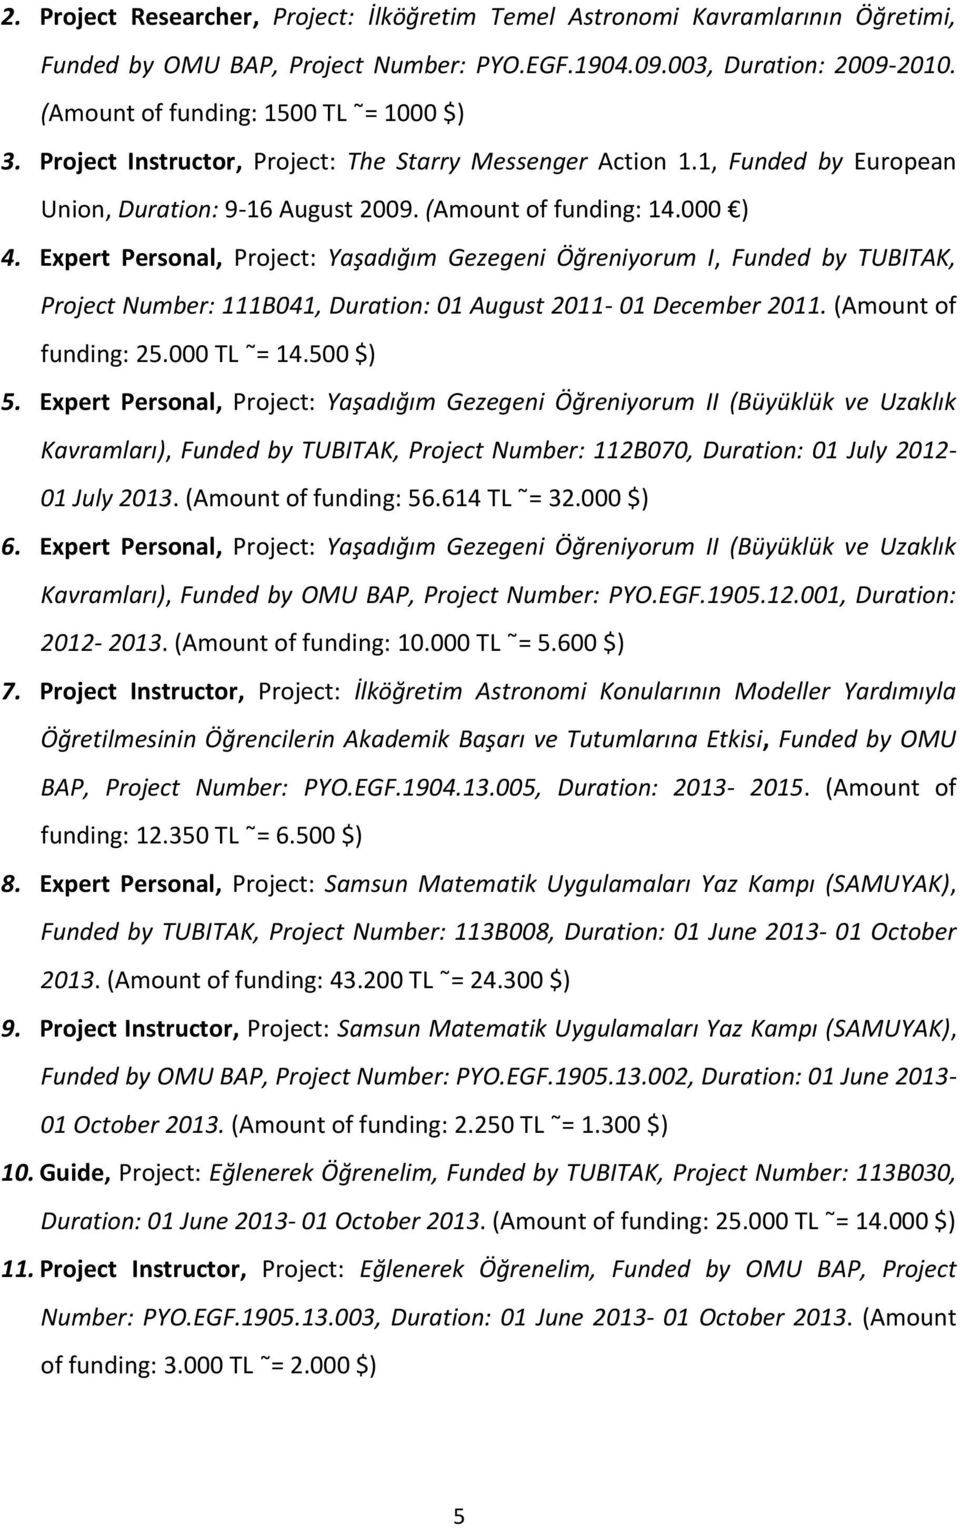 Expert Personal, Project: Yaşadığım Gezegeni Öğreniyorum I, Funded by TUBITAK, Project Number: 111B041, Duration: 01 August 2011-01 December 2011. (Amount of funding: 25.000 TL = 14.500 $) 5.